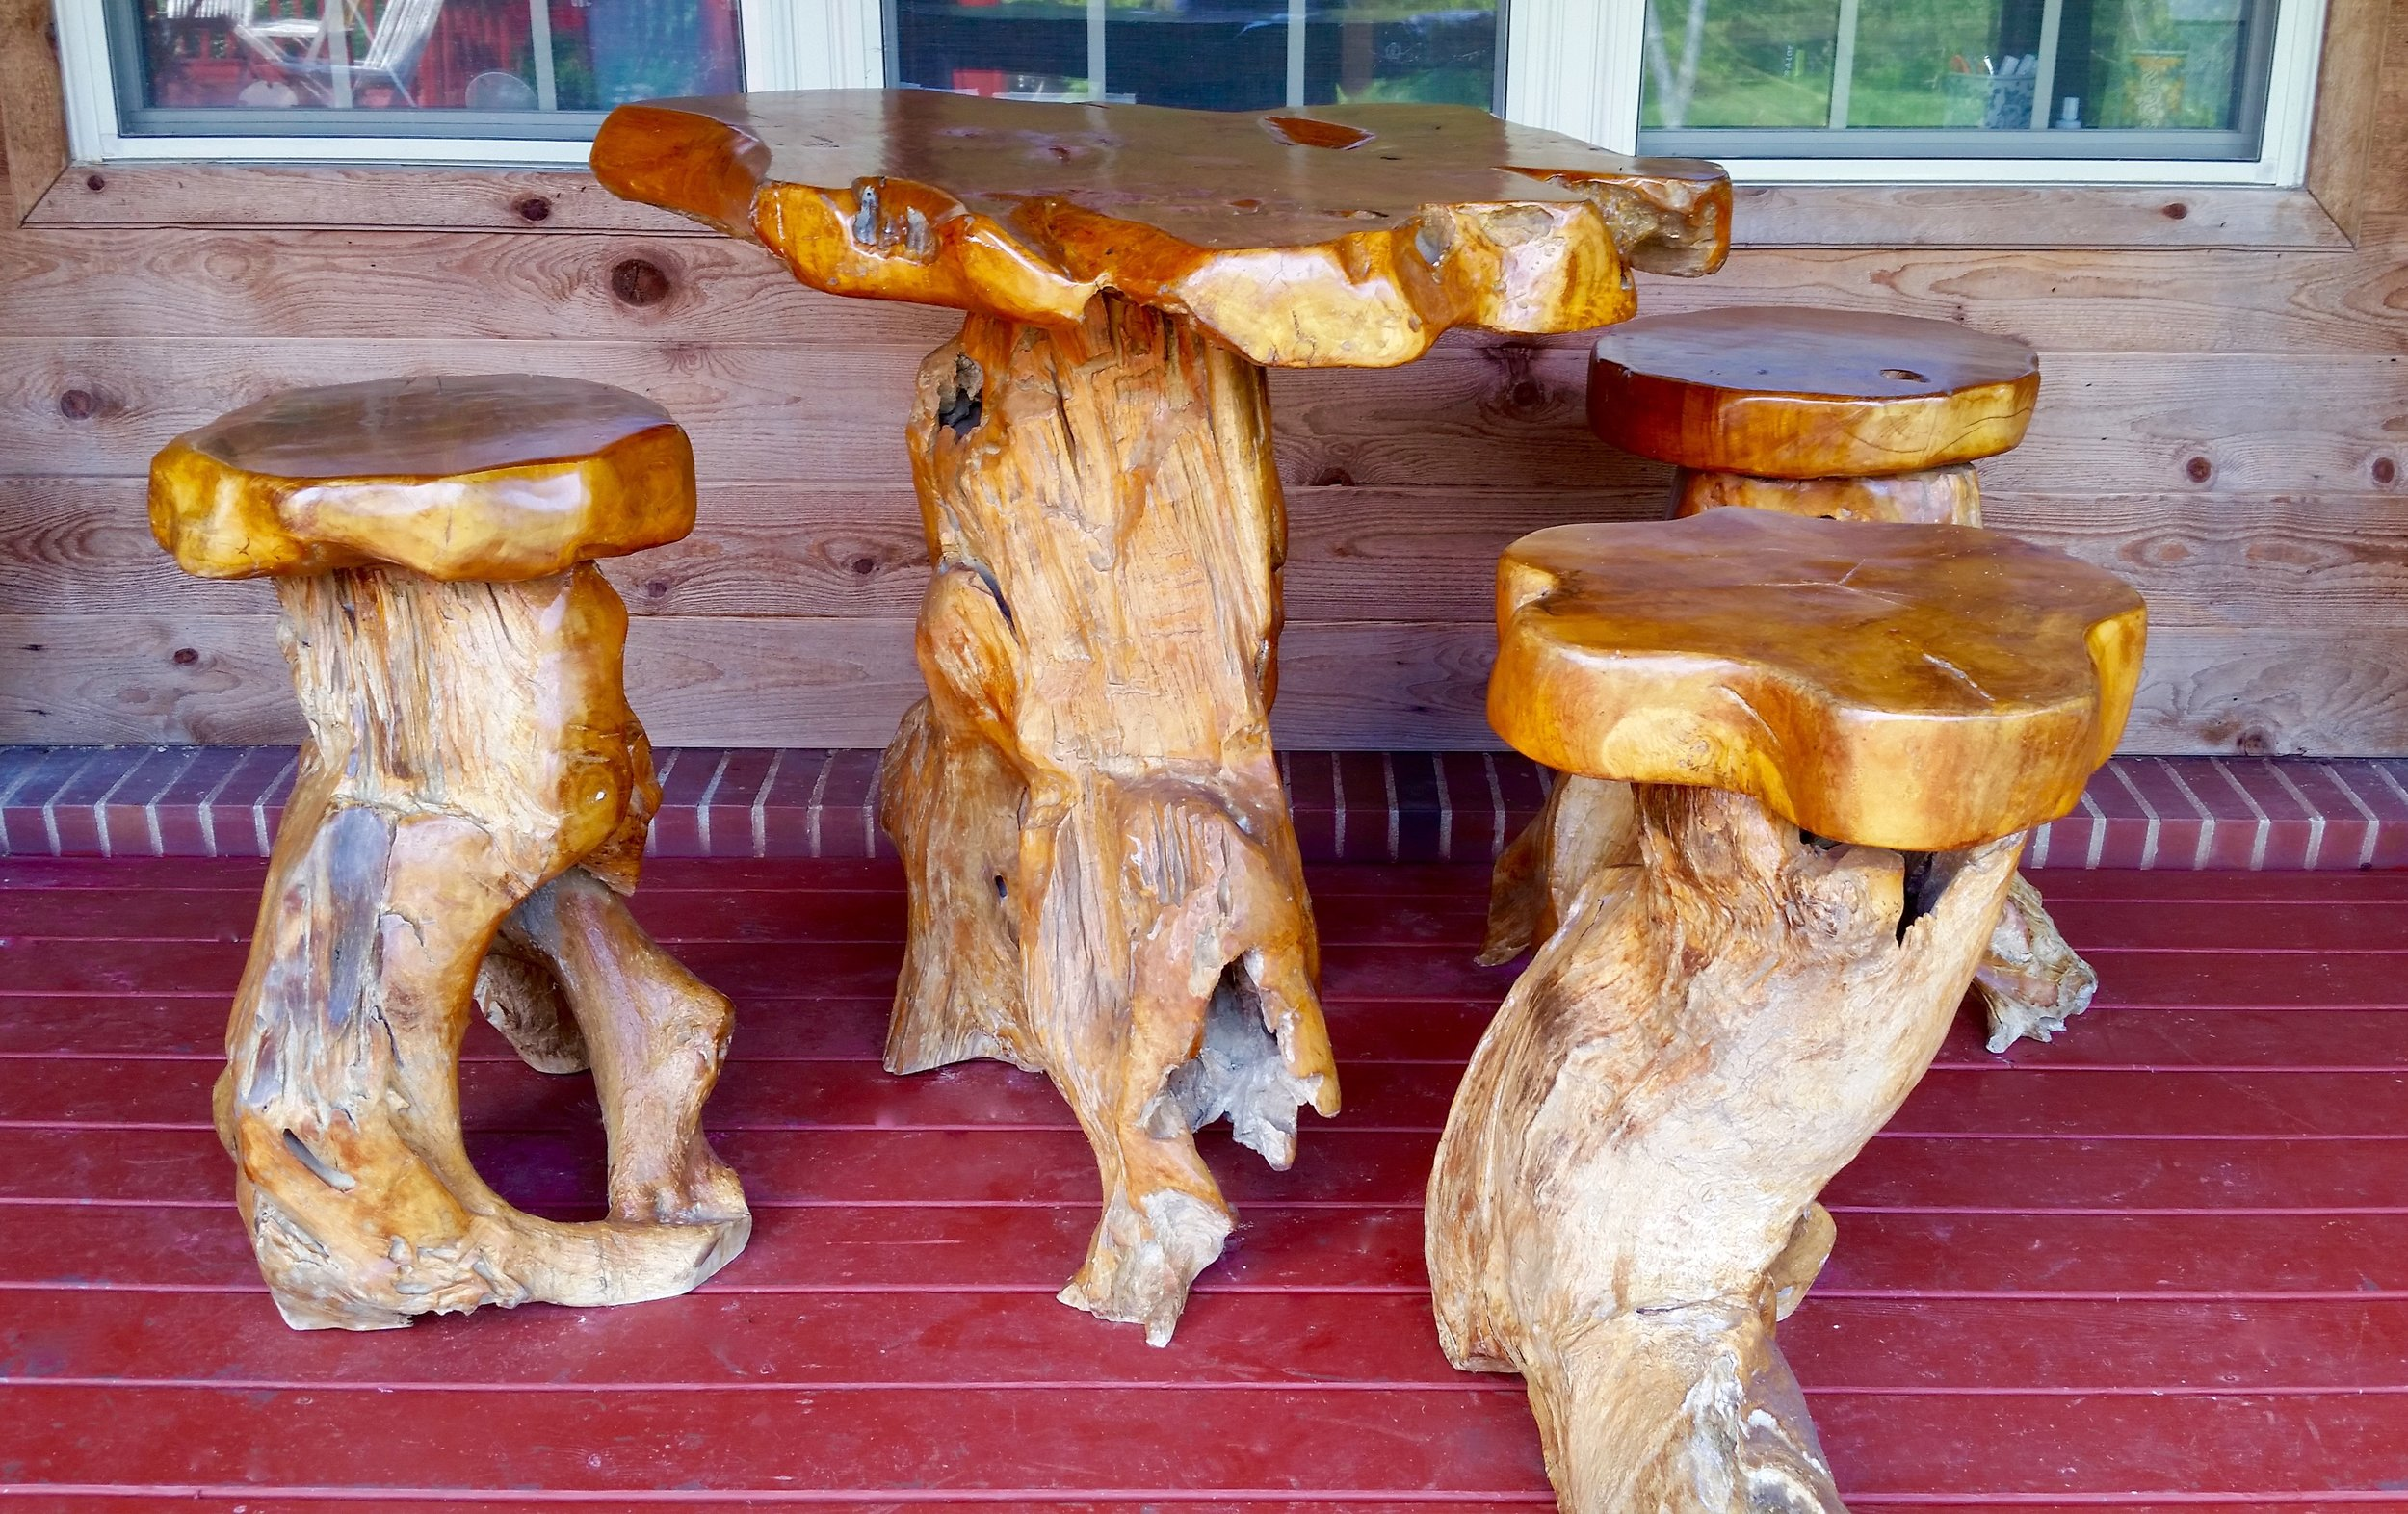 teak tables and chairs.jpg